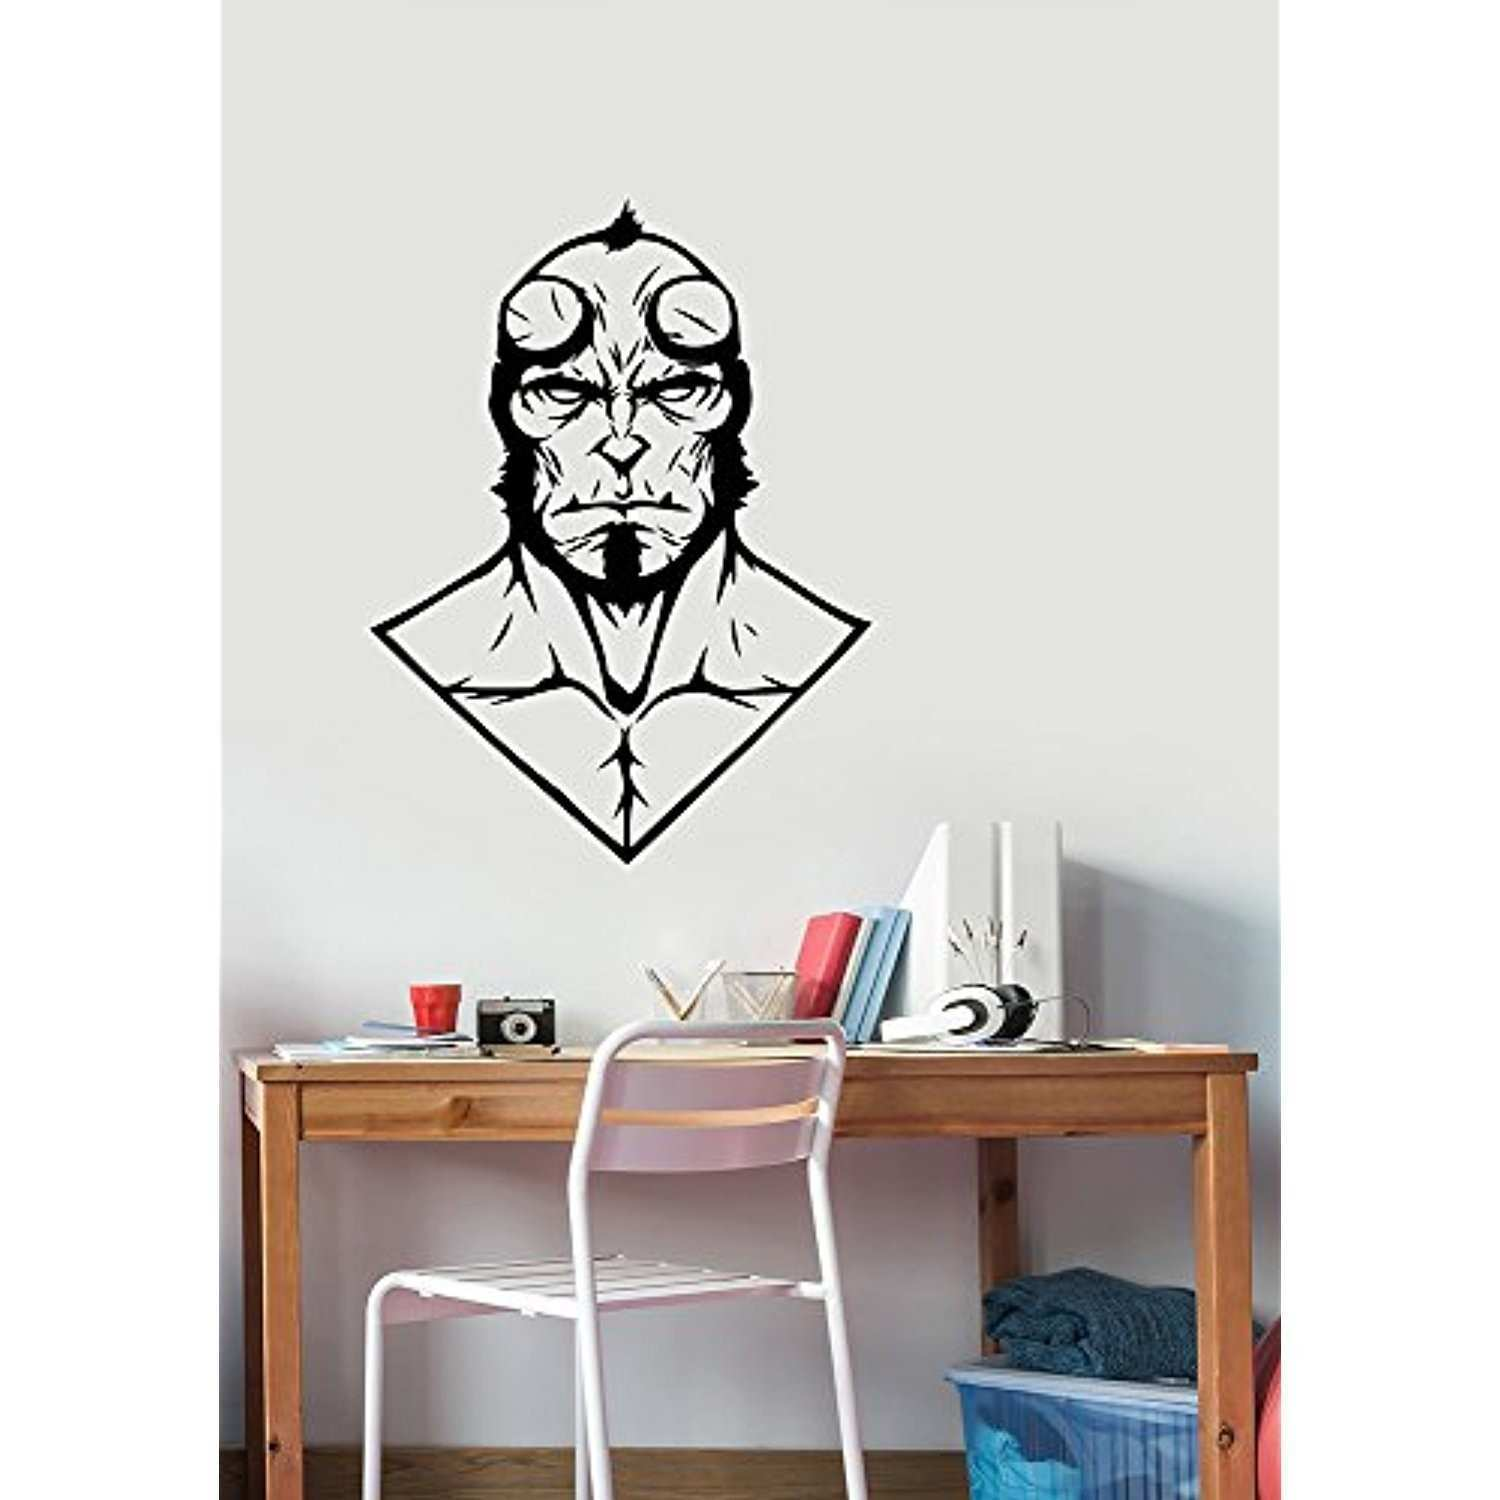 Inspirational Modern Decals for Walls